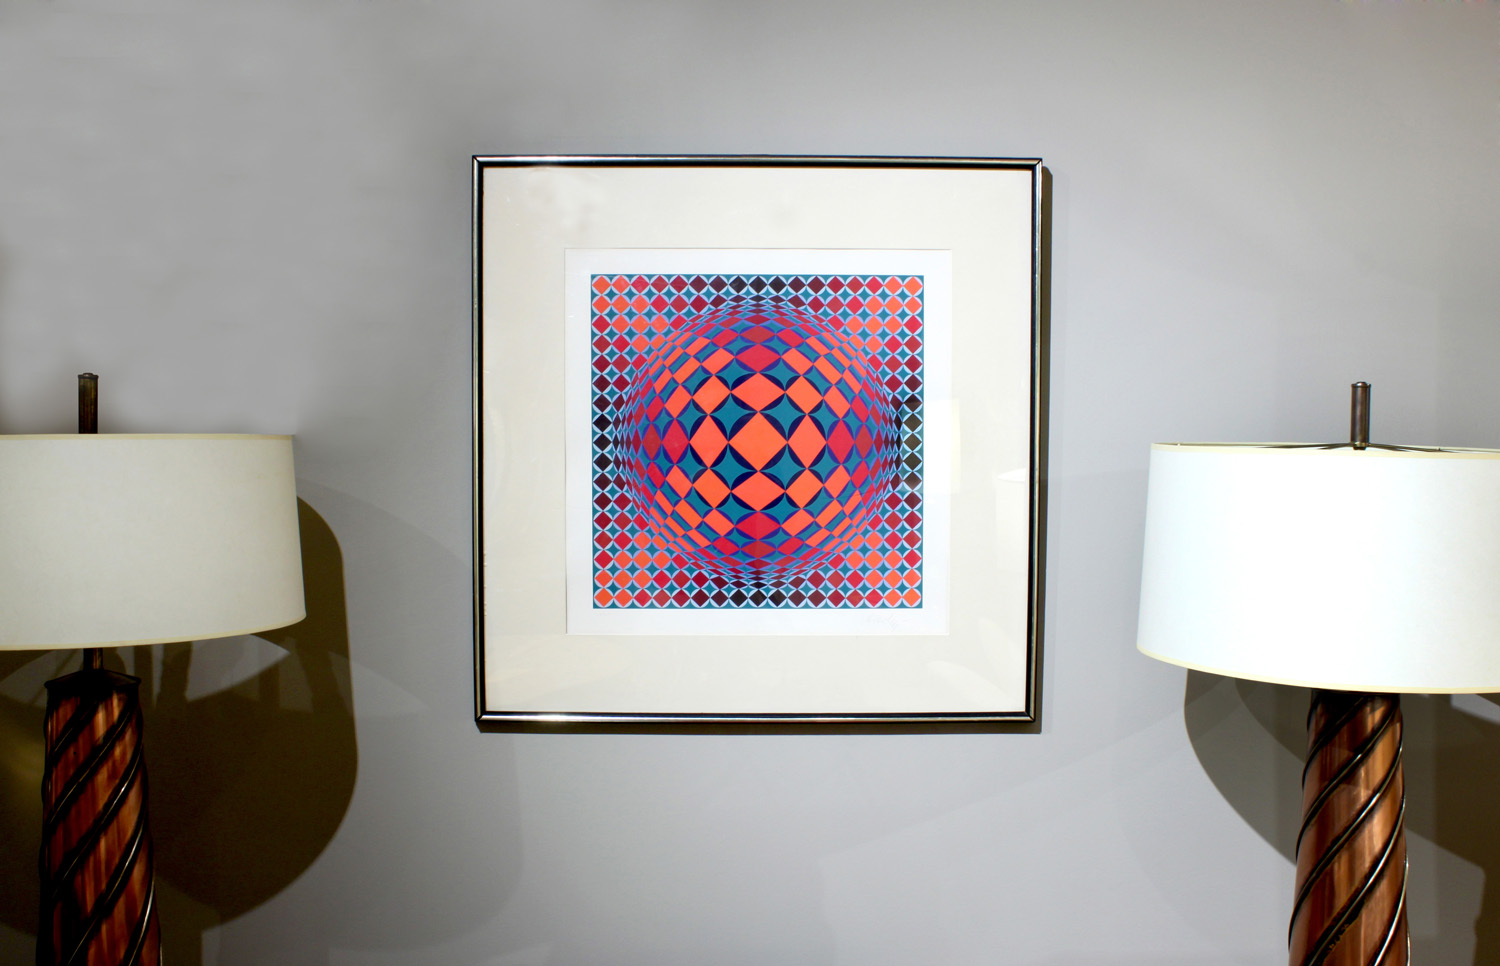 Vasarely 25 litho colorful geom painting59 hirs atmo.jpg